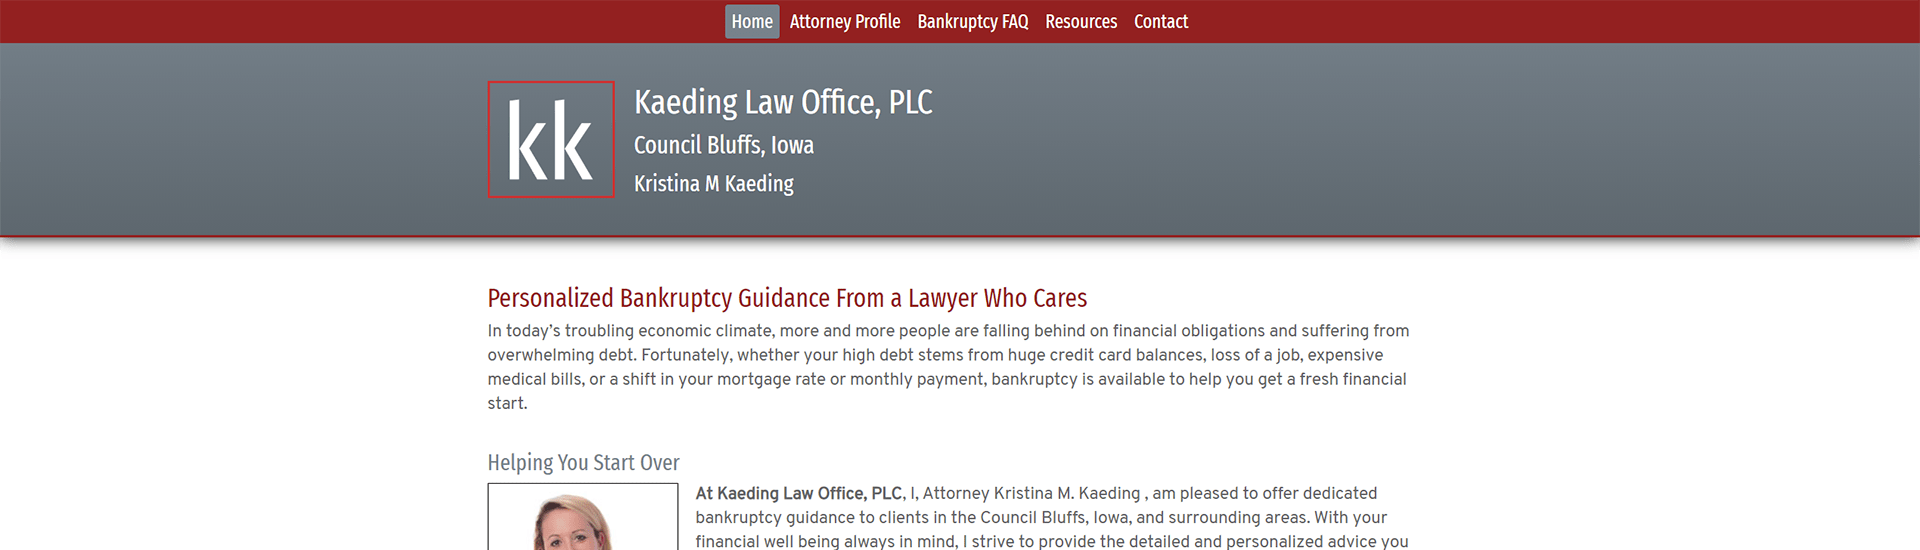 Kaeding Law Office Home Page